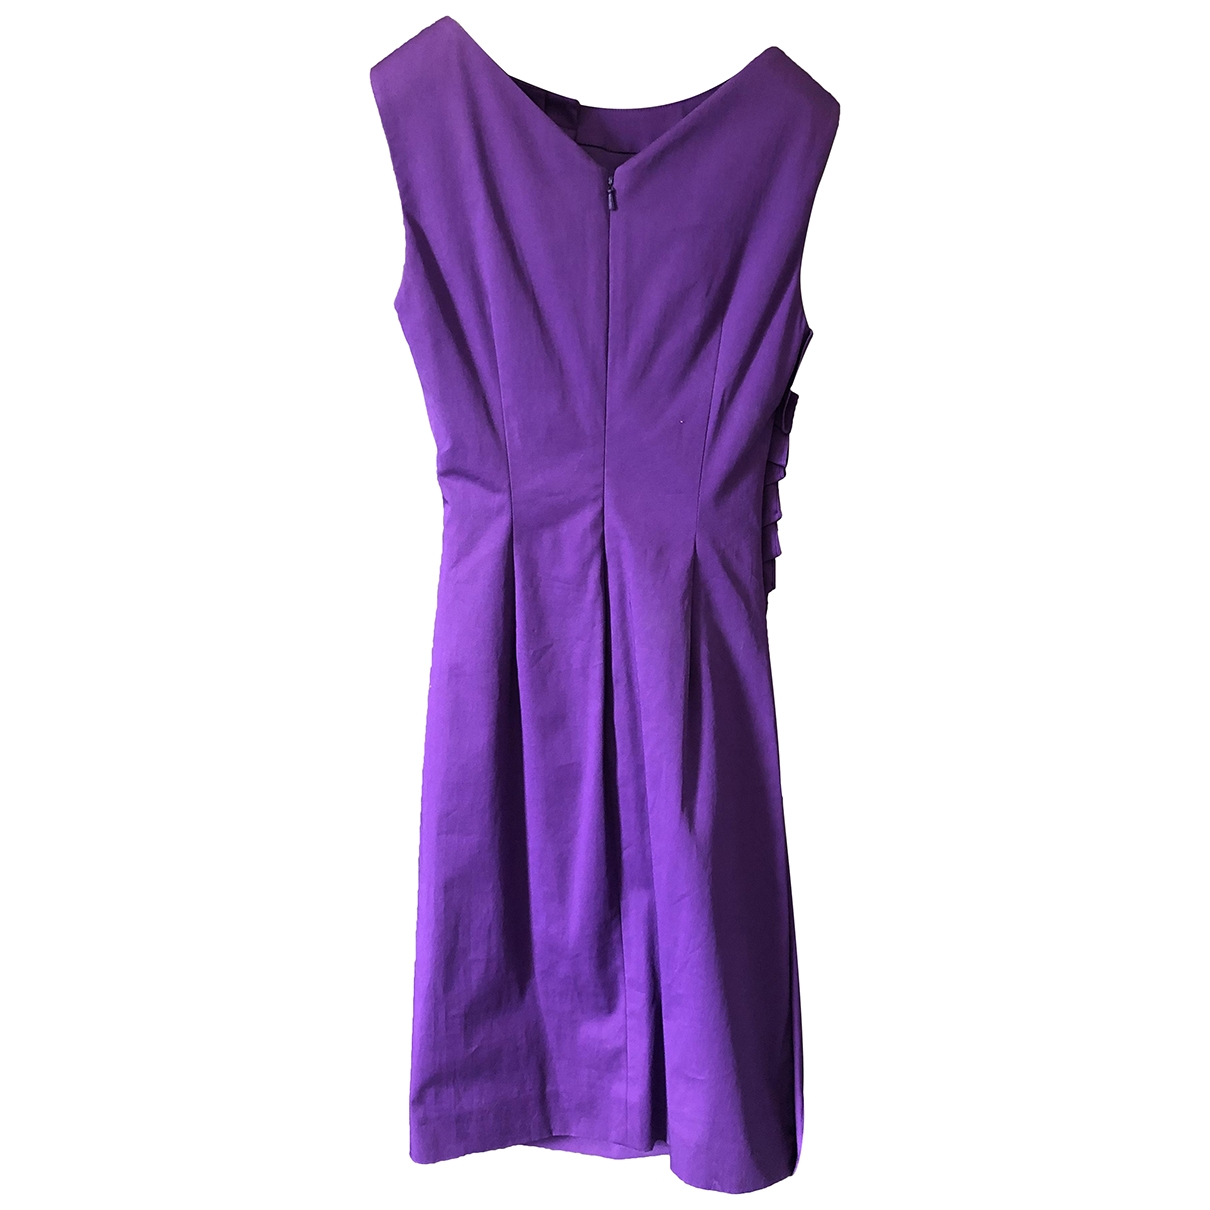 Christian Dior \N Kleid in  Lila Polyester